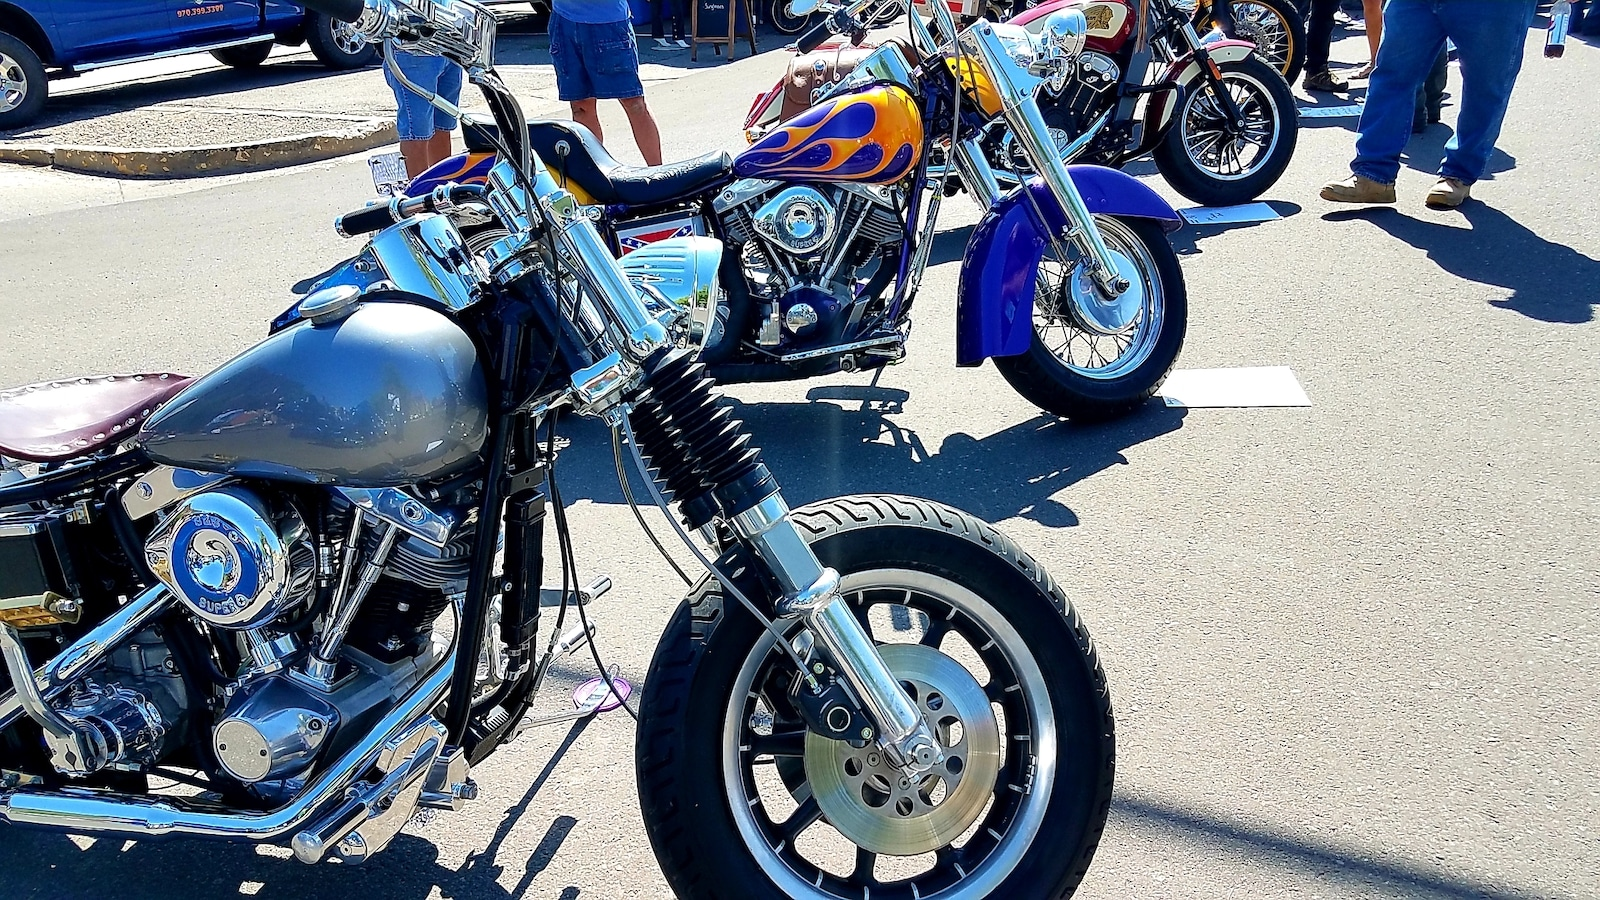 Motorcycles lined up at Unknown Motorcycle Show Montrose